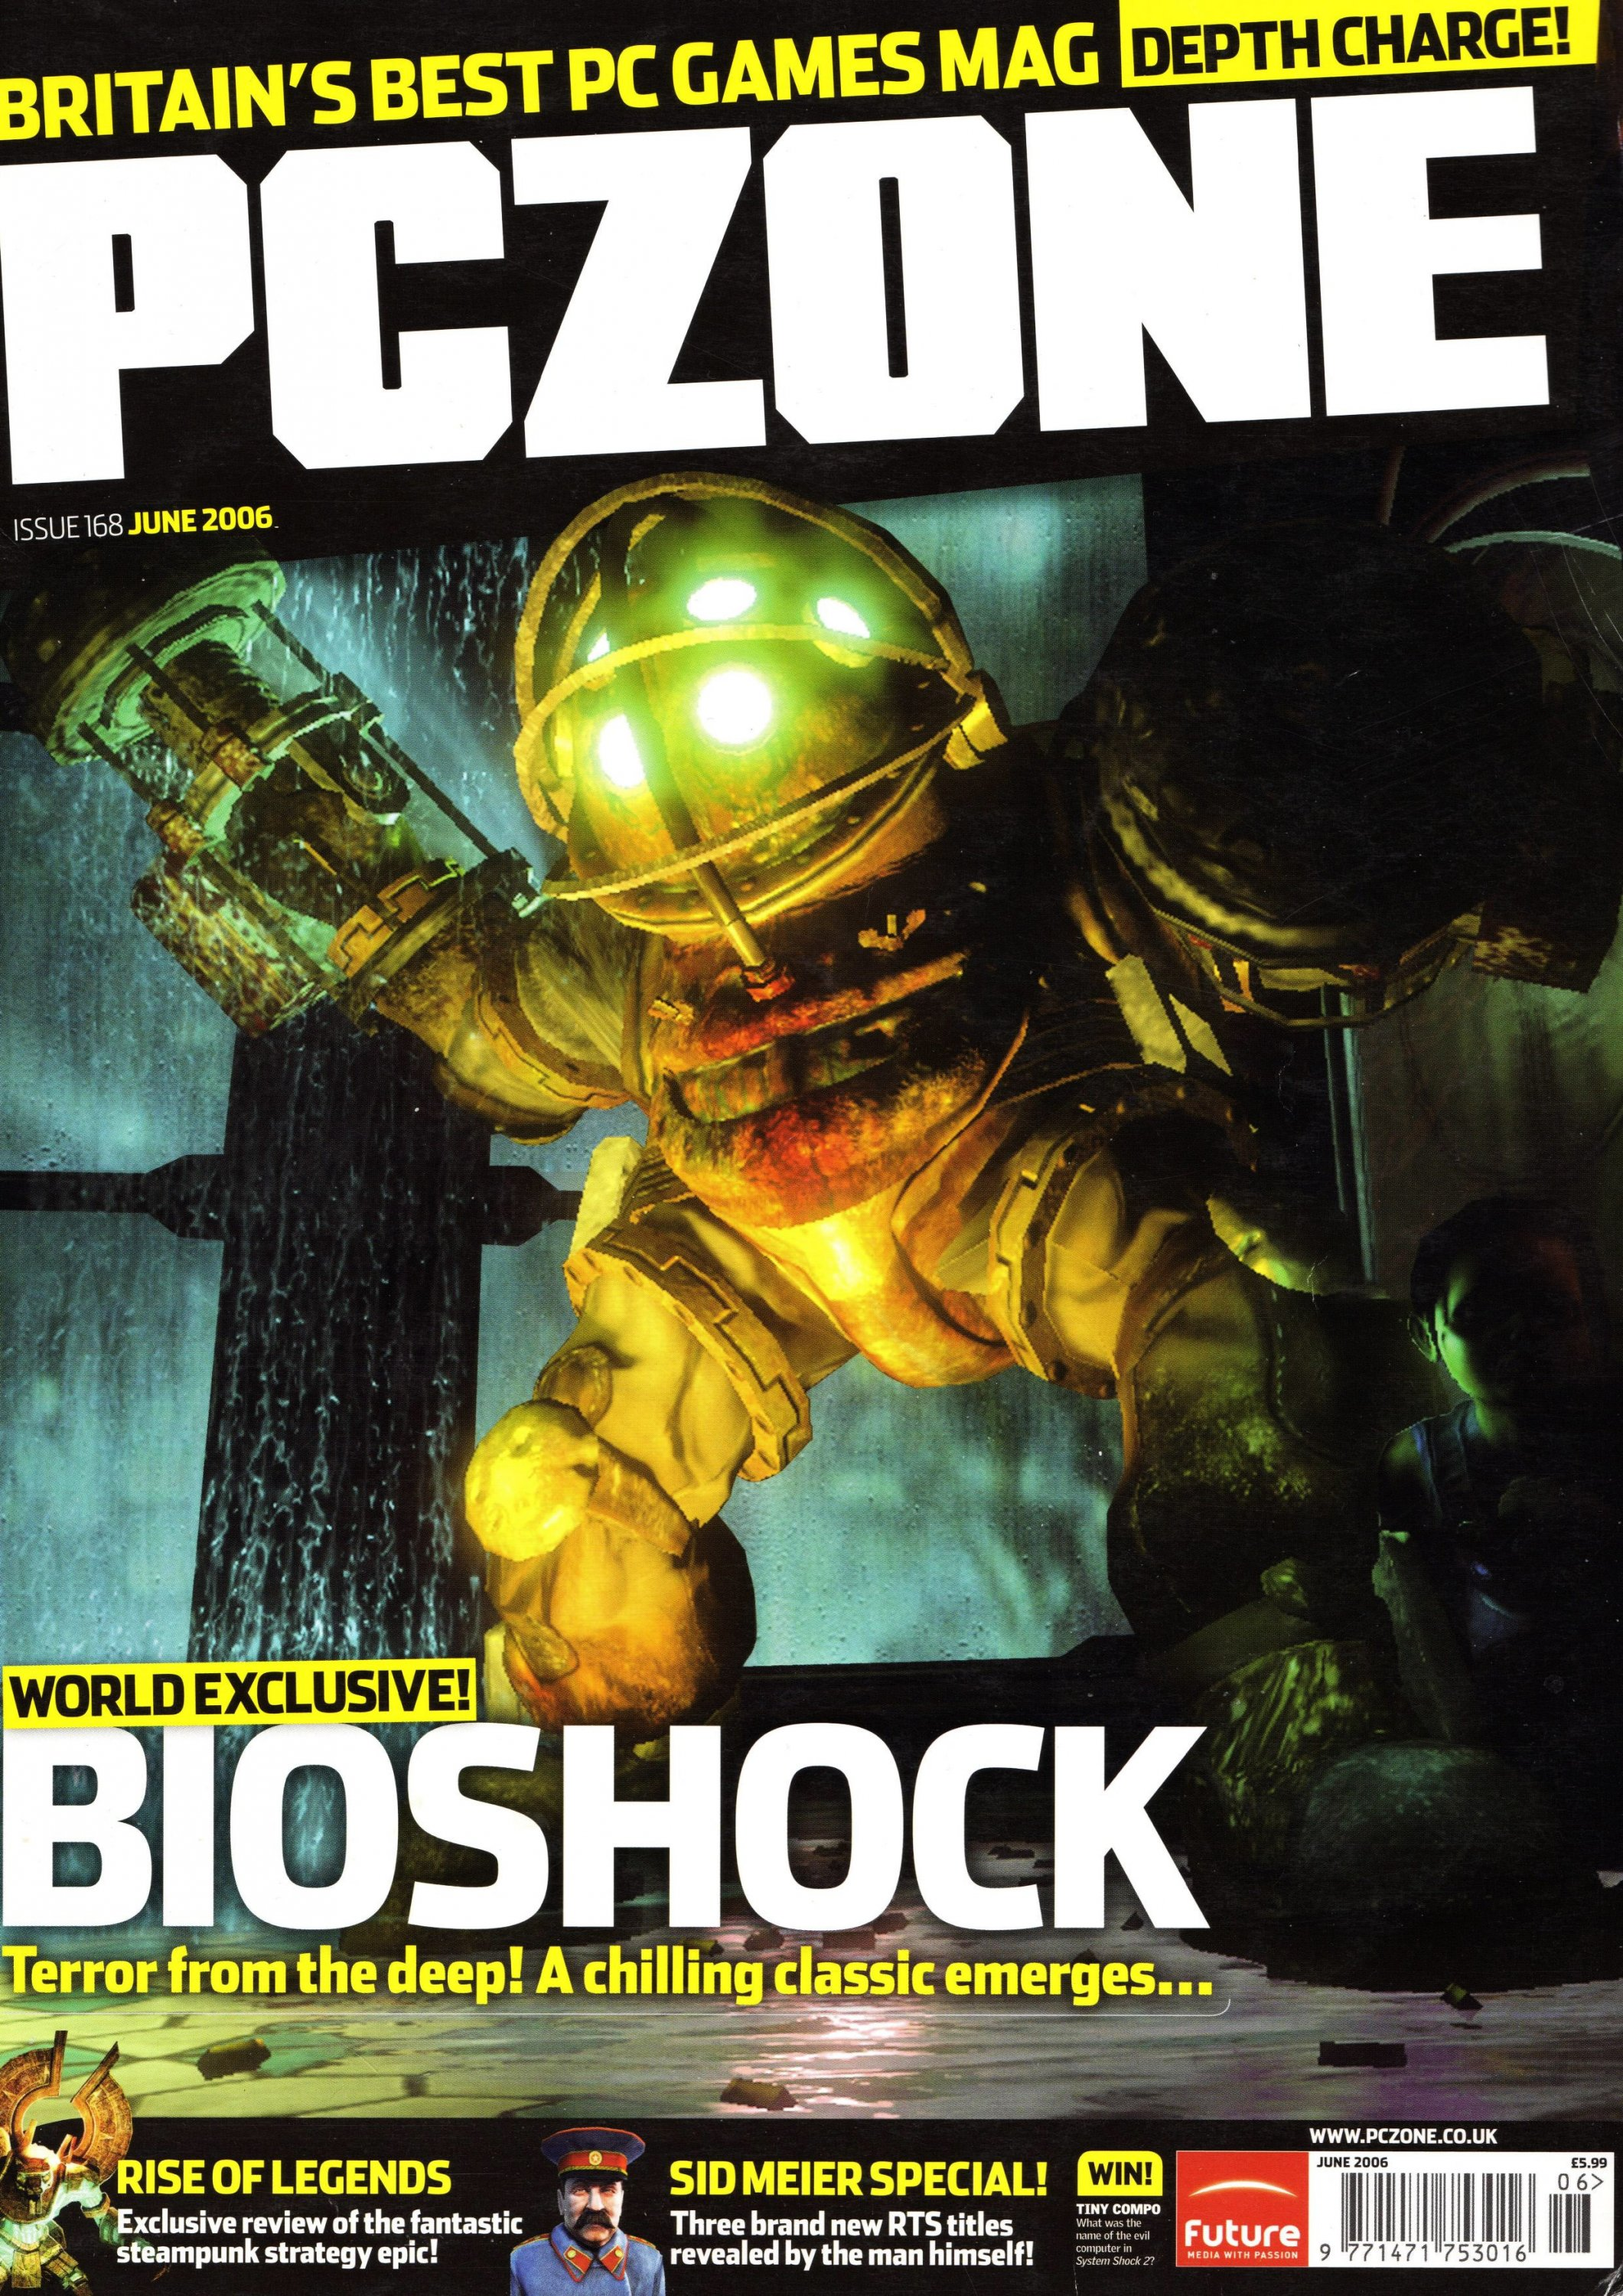 PC Zone Issue 168 (June 2006)